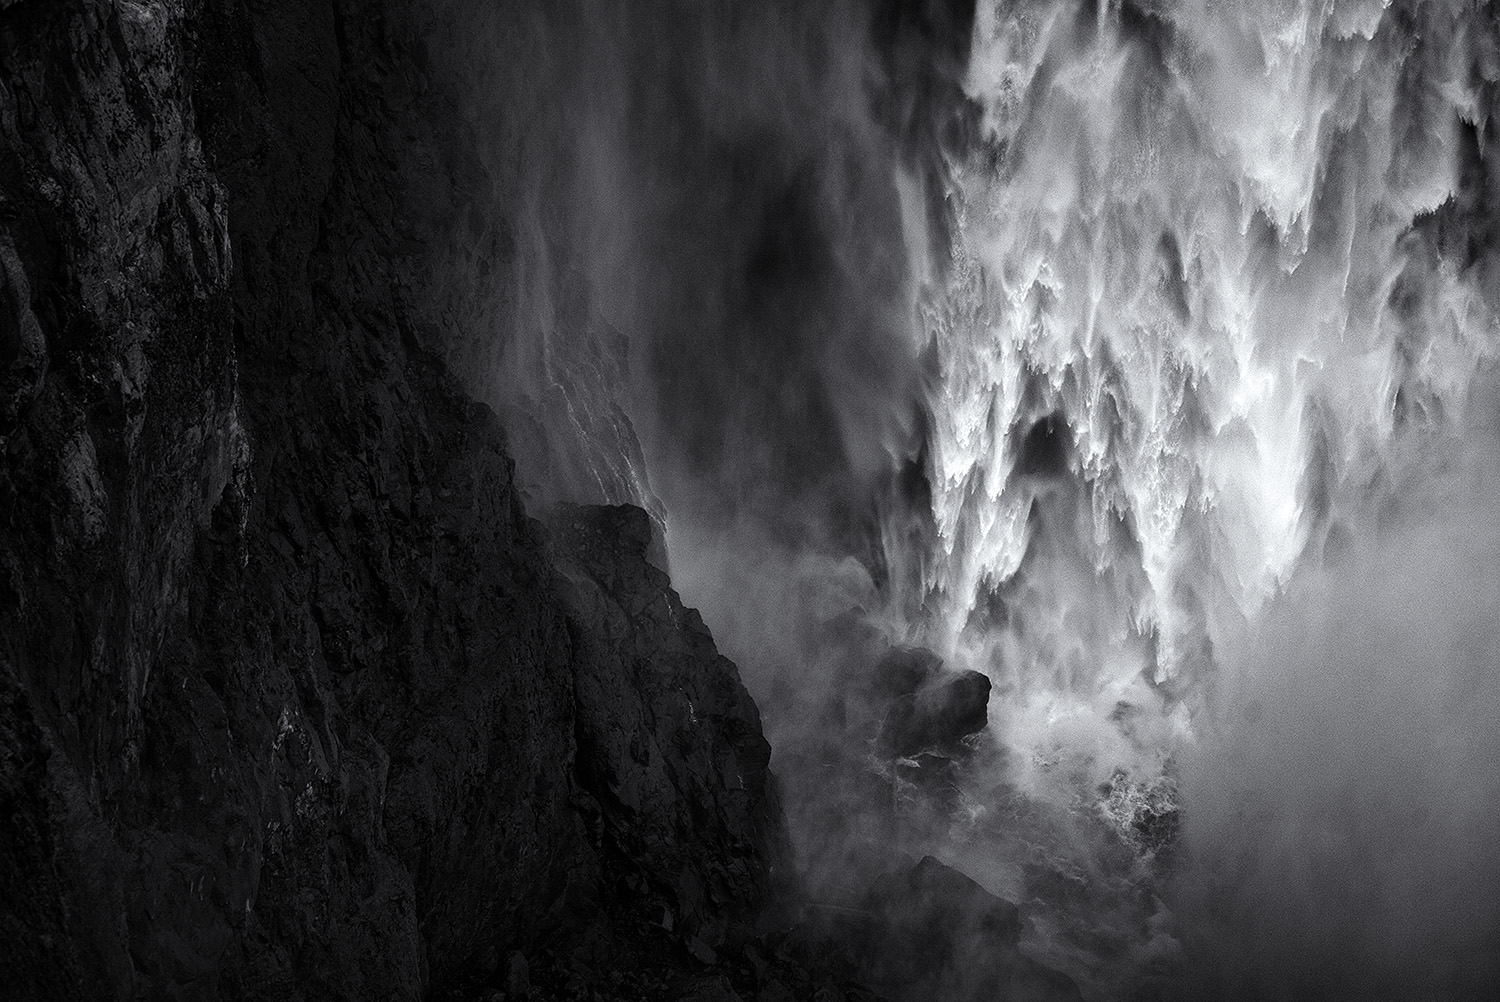 Copy of Snoqualmie Falls pulled back, Washington 2015